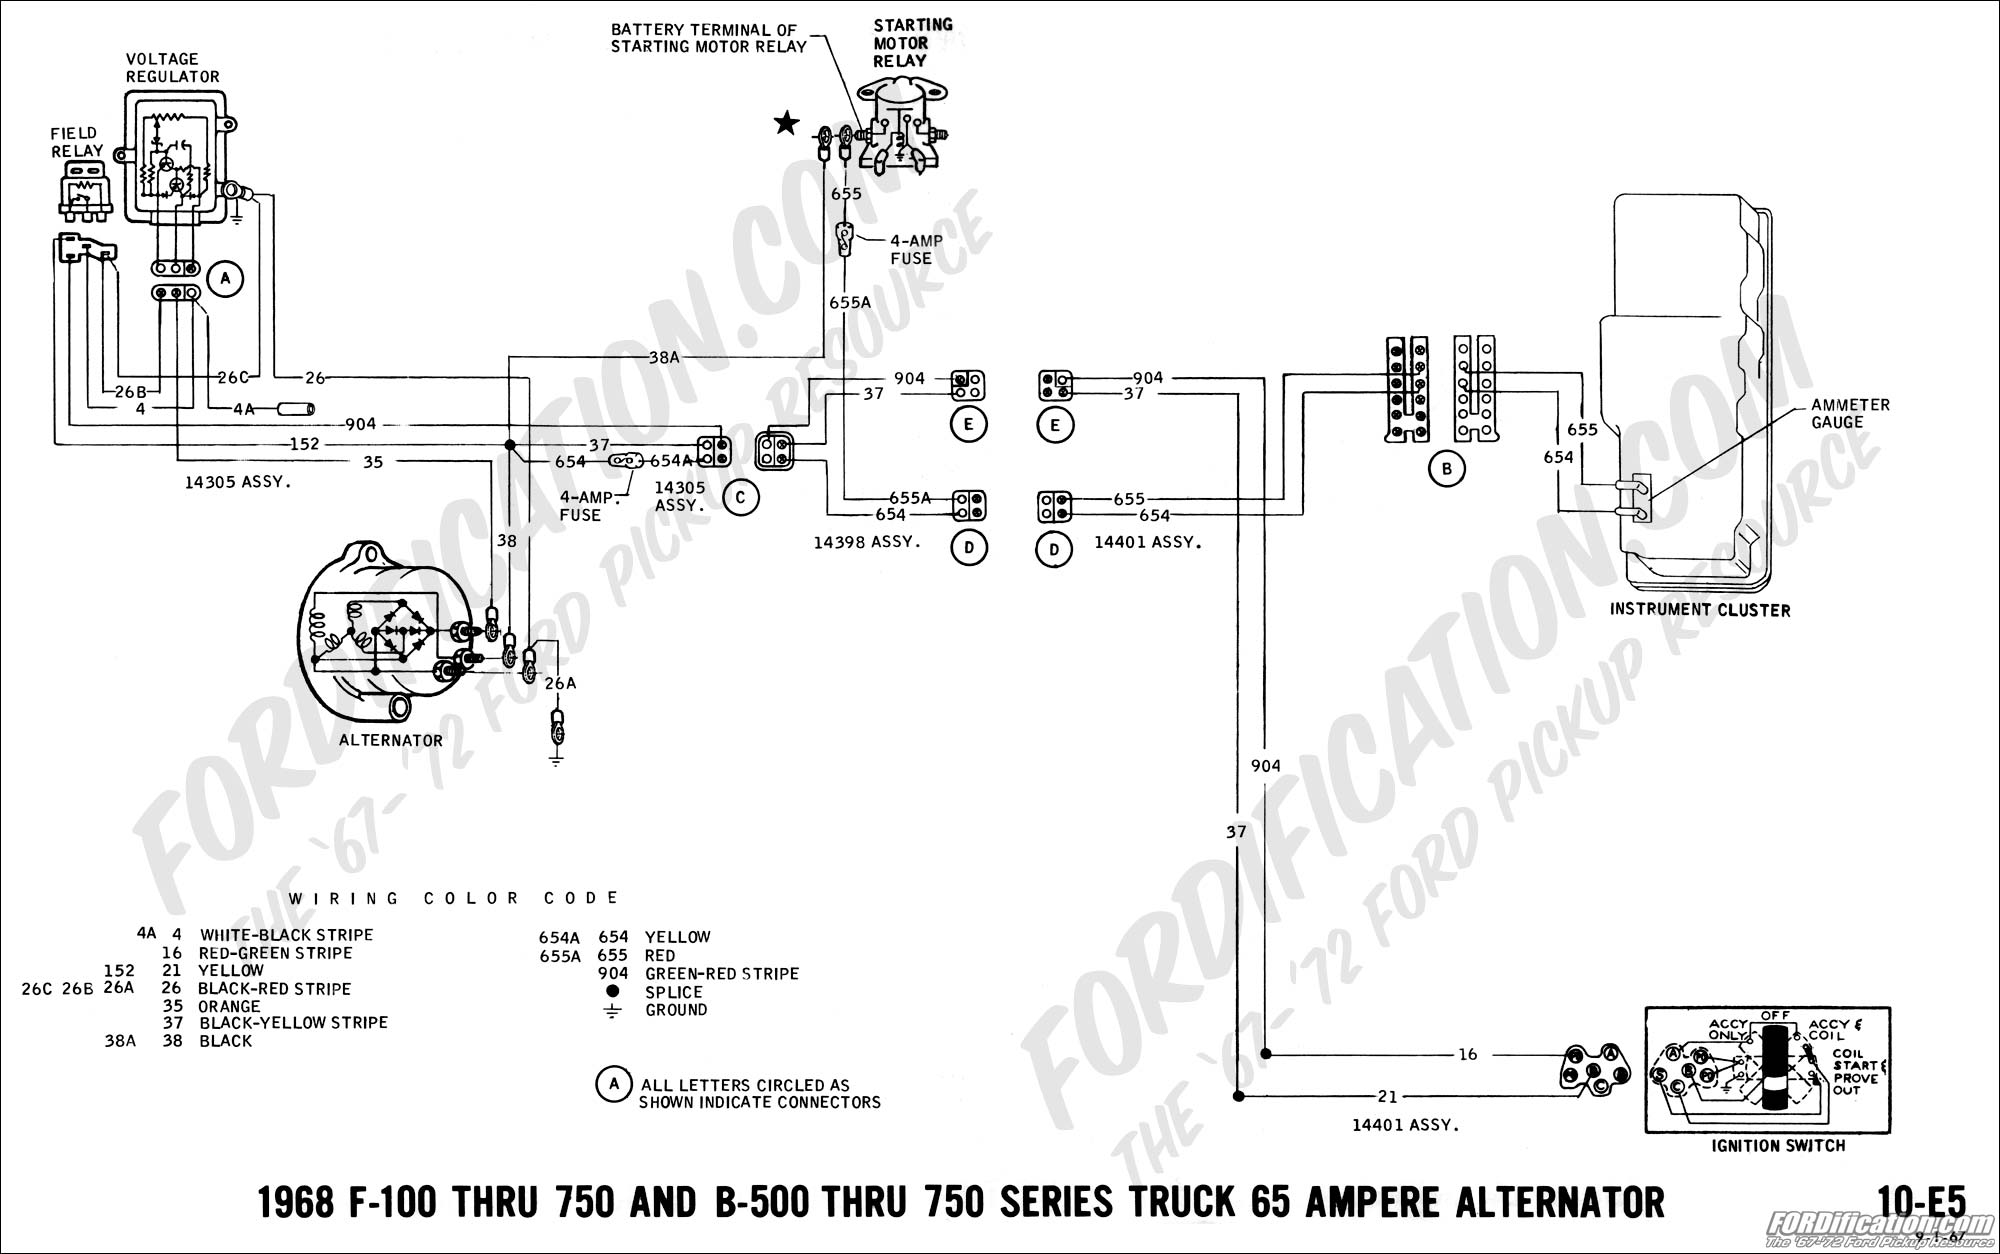 68 07 ford truck technical drawings and schematics section h wiring 1985 ford f150 ignition wiring diagram at highcare.asia